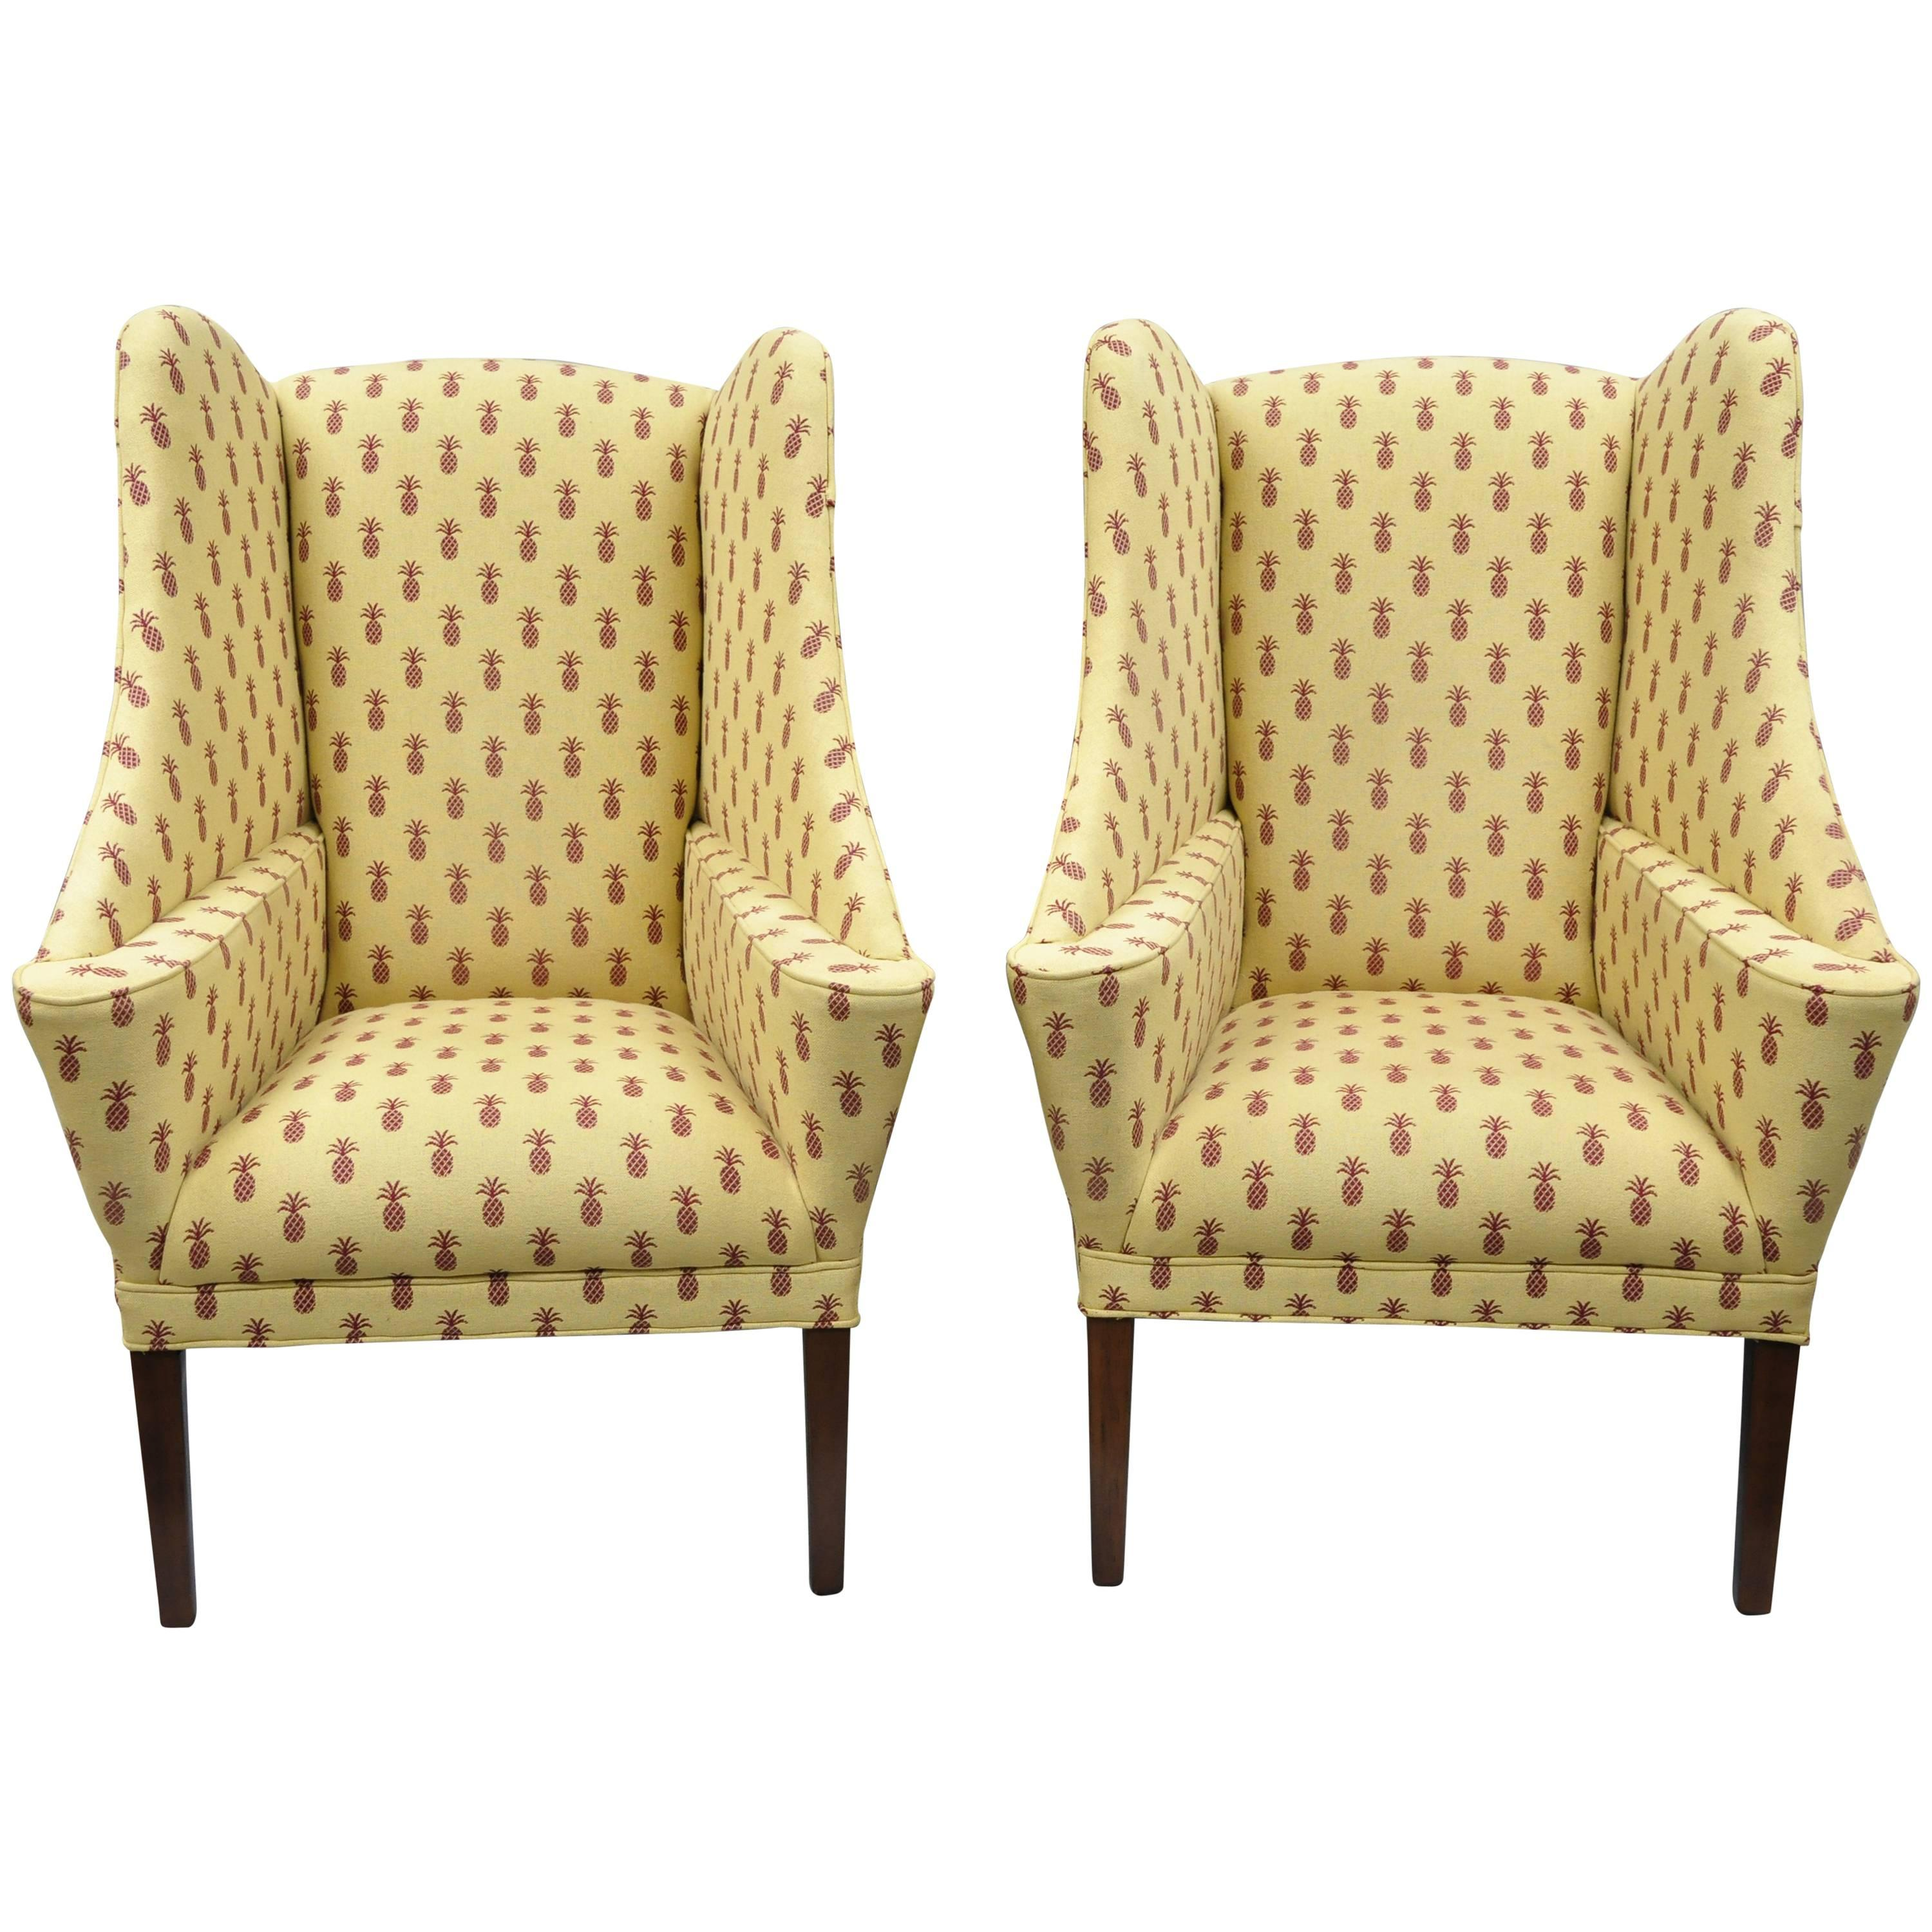 Pair Of Oversized Custom Wingback Chairs With Pineapple Printed Yellow Fabric  For Sale